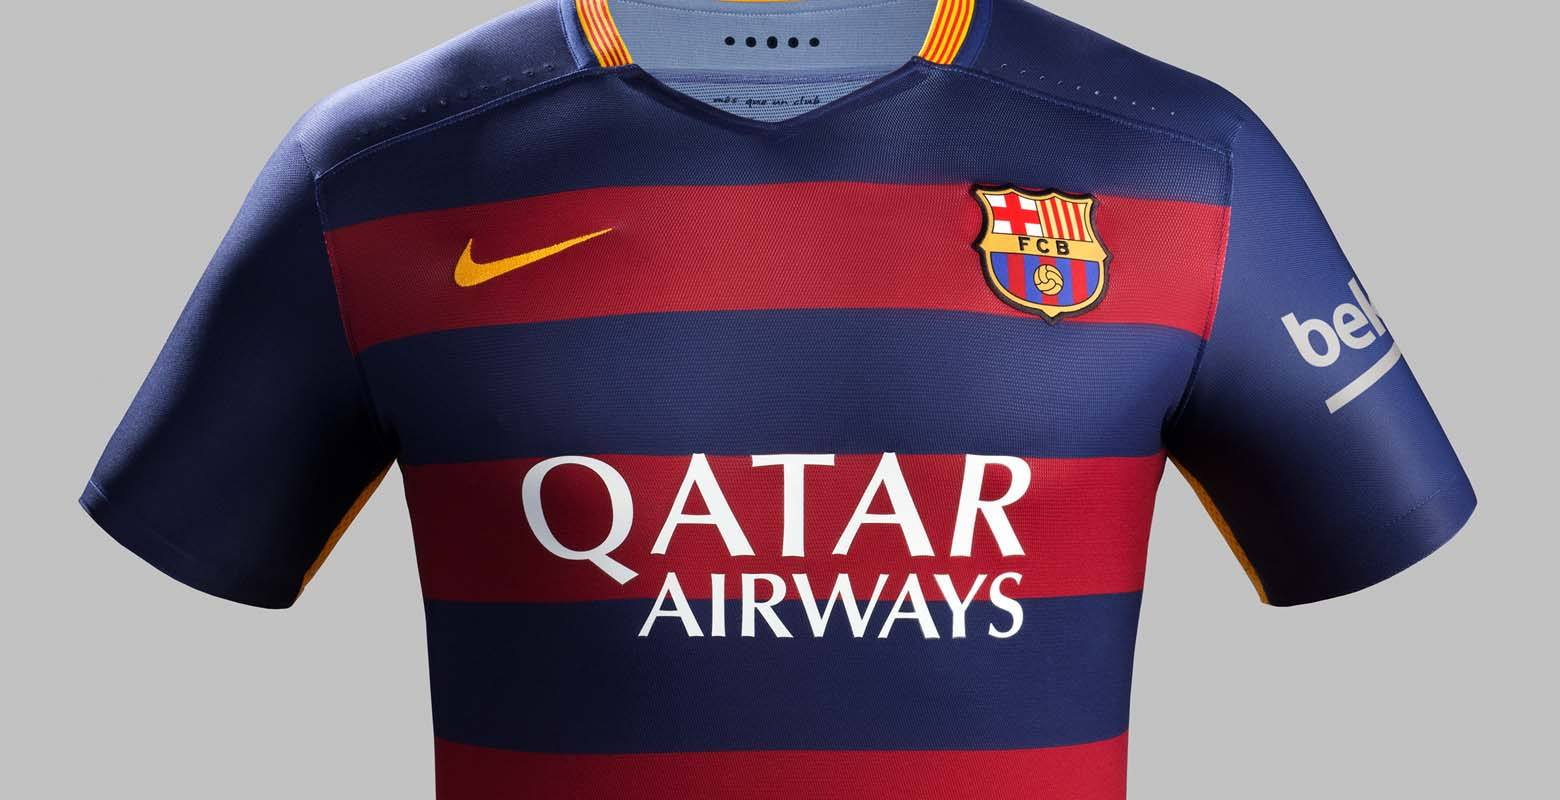 Fc barcelona mes que un club technology and operations for Oficina qatar barcelona